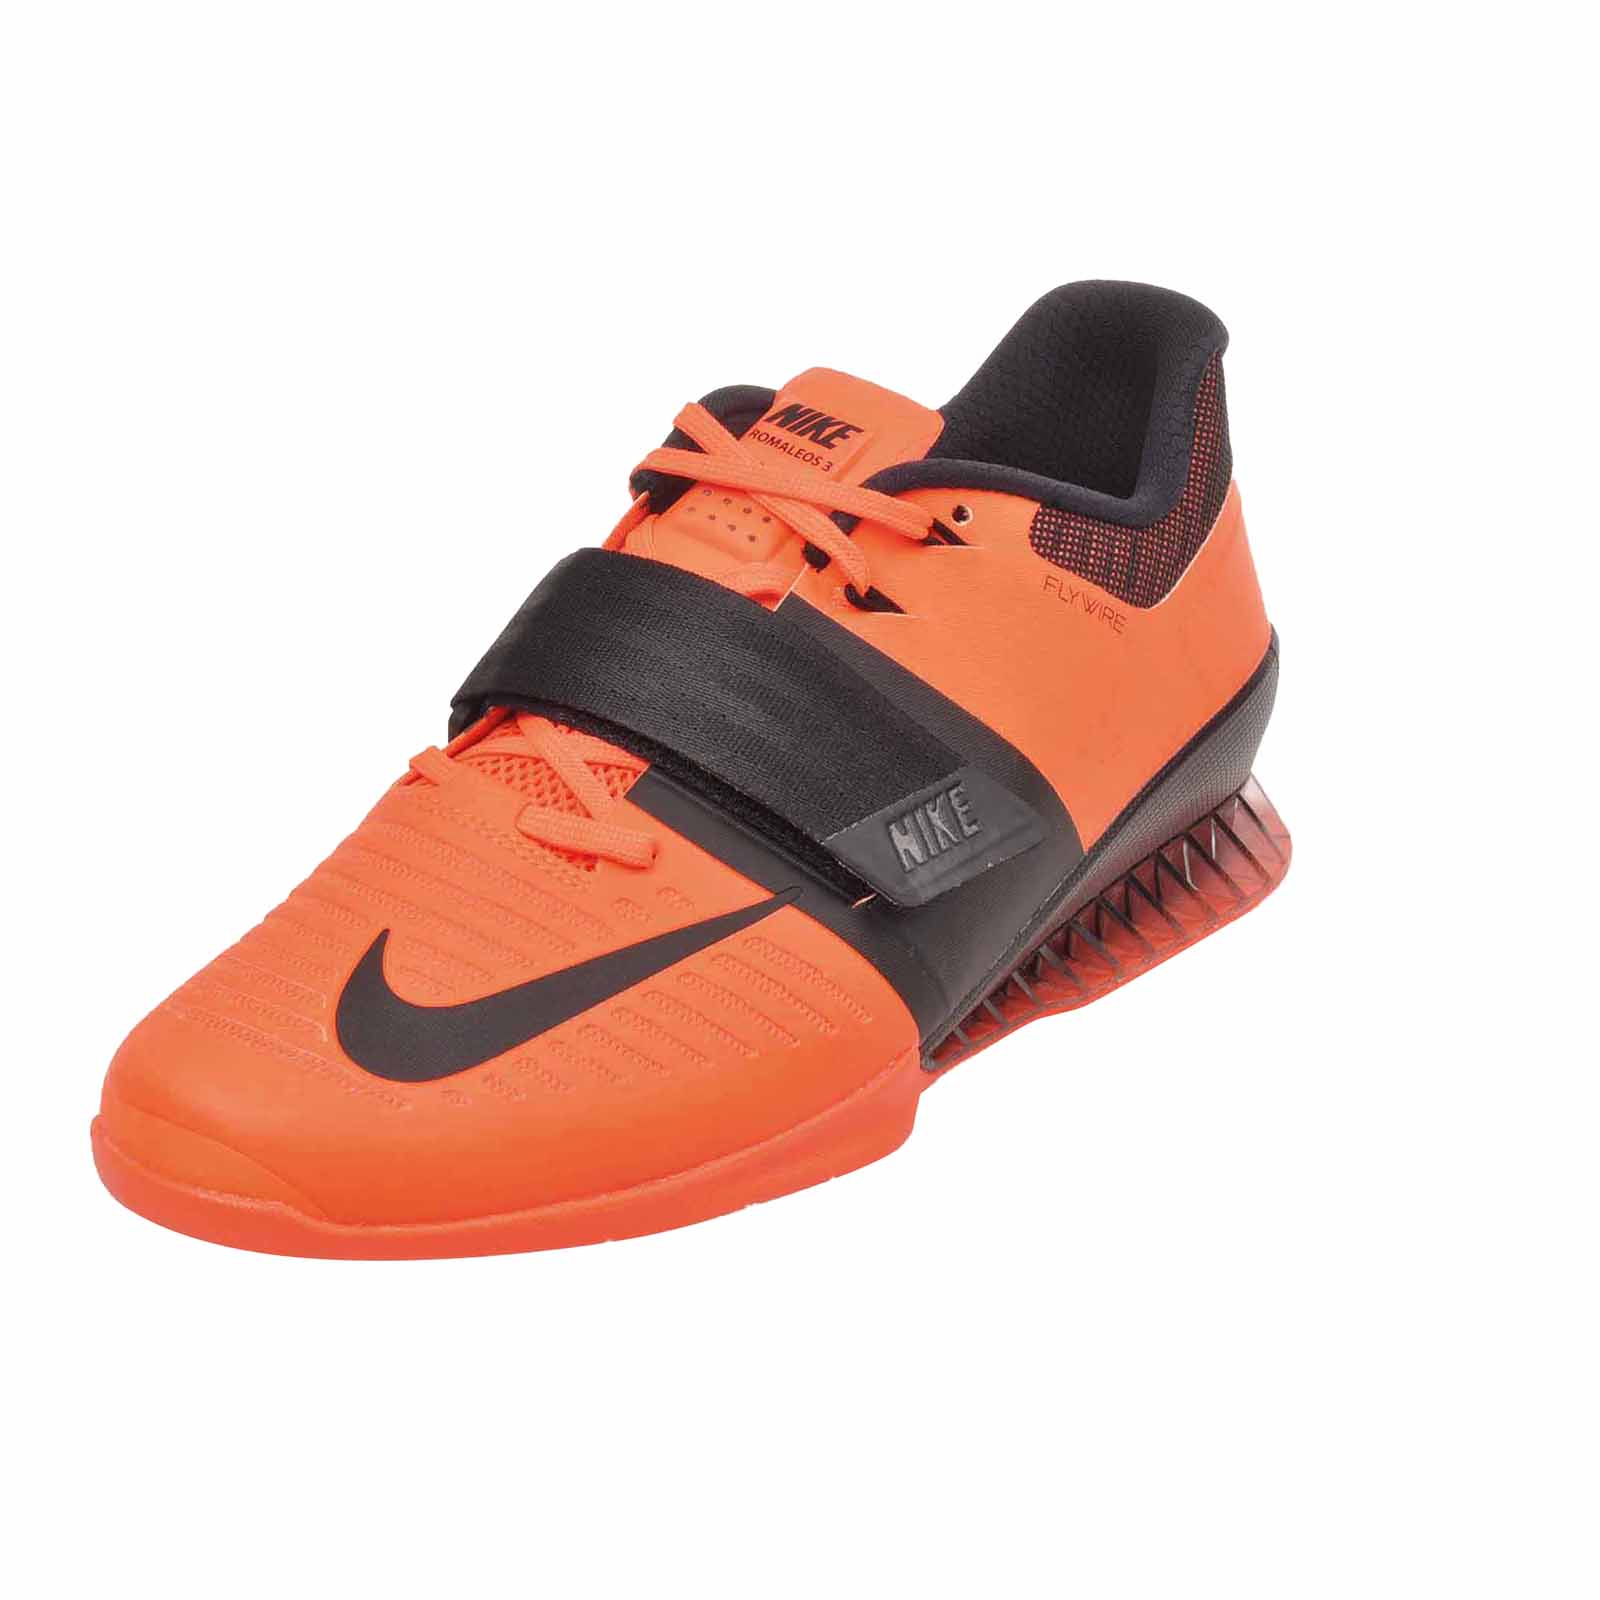 Nike Romaleos 3 Cross Training Mens Weightlifting Shoes Bright ... 3976efaca